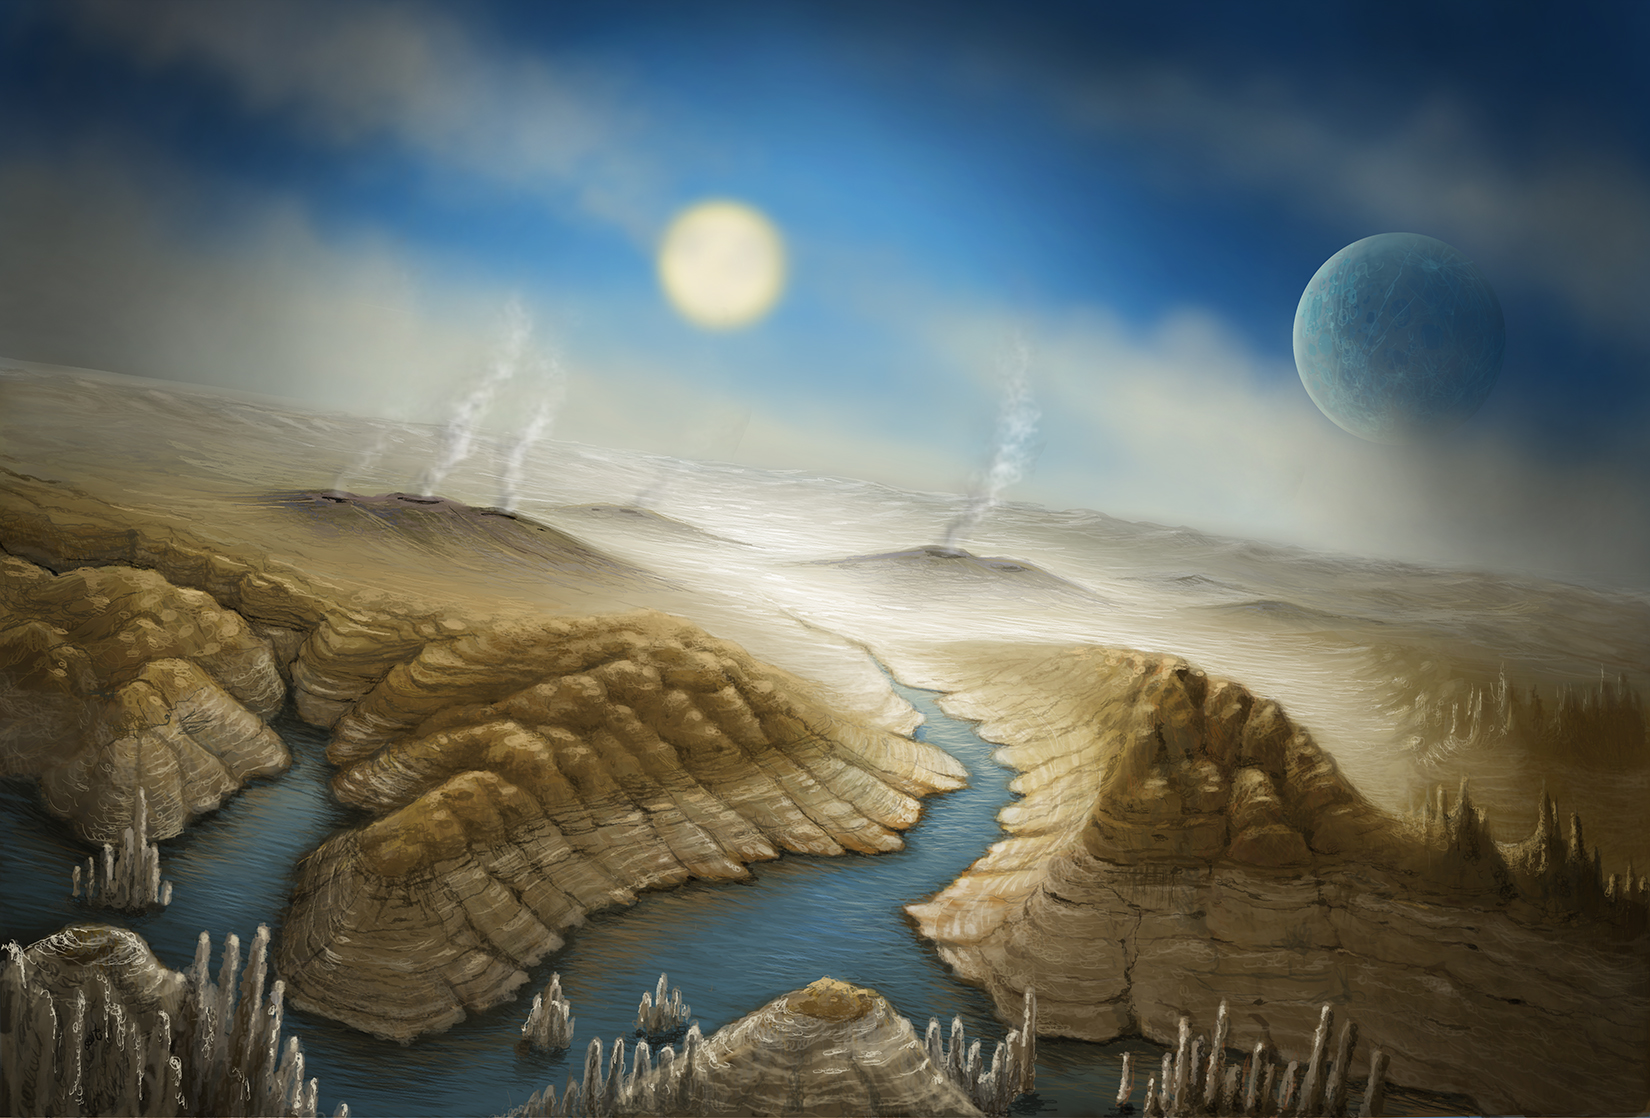 Kepler 452b: Possible Earth 2.0 Discovered (PHOTO)